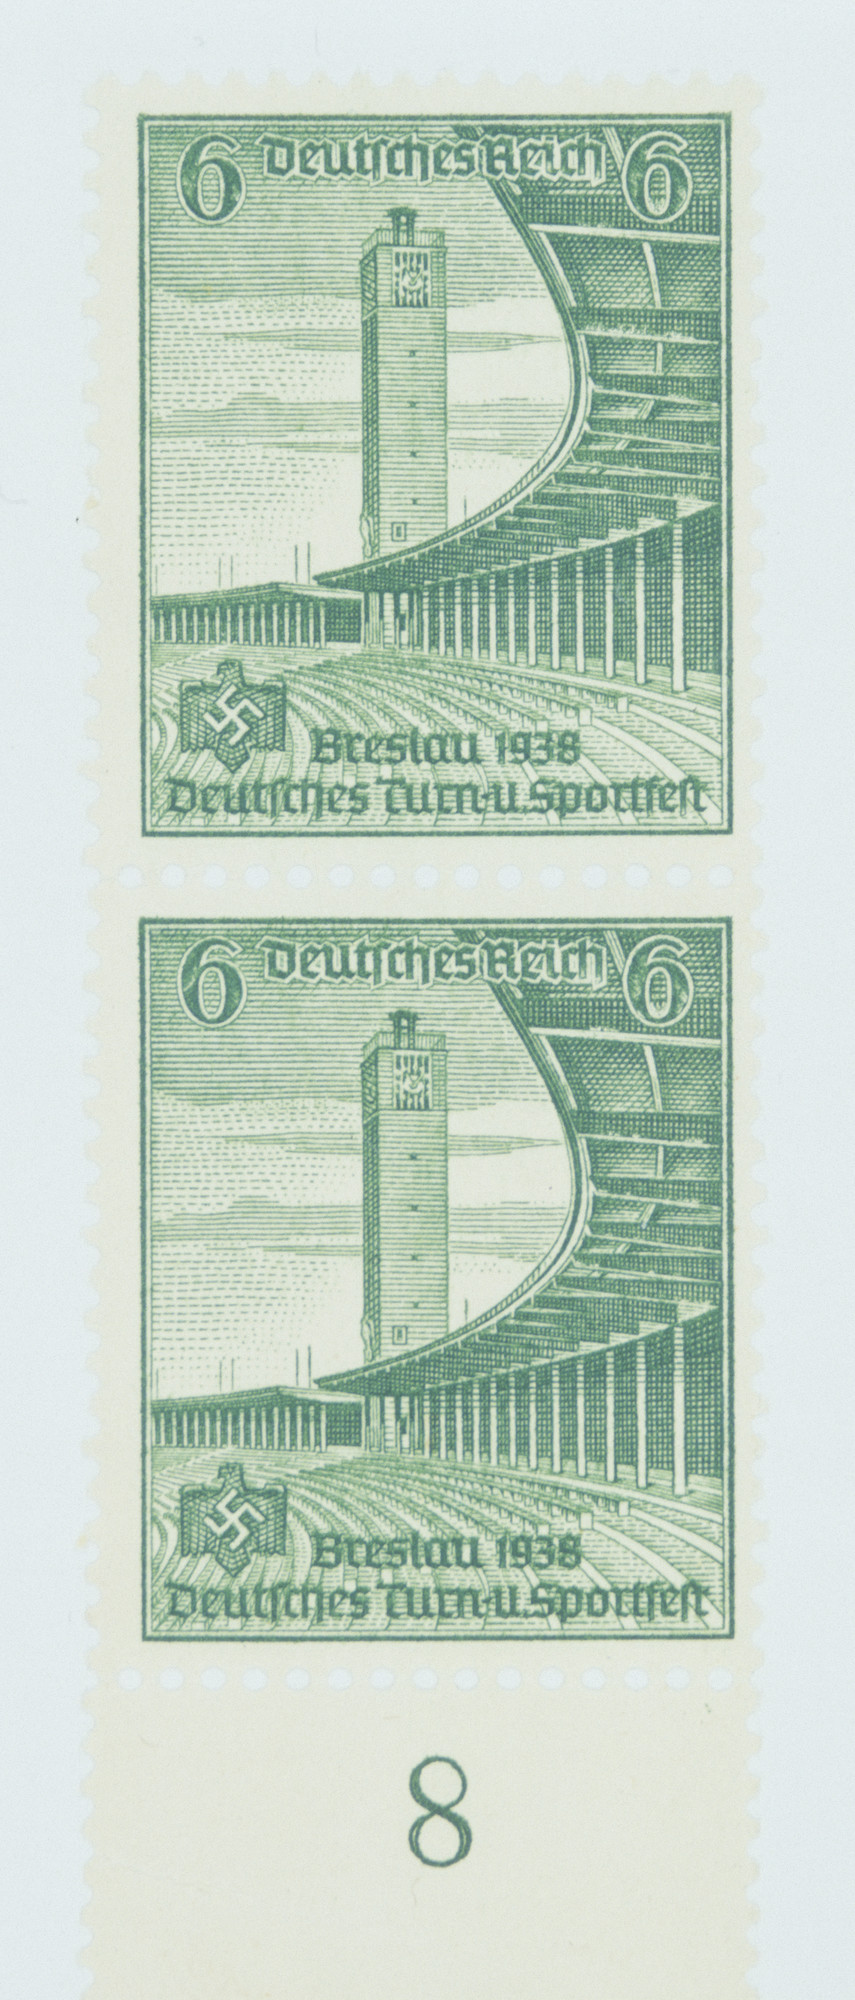 Third Reich stamps commemorating the 1938 Sports Festival in Breslau.